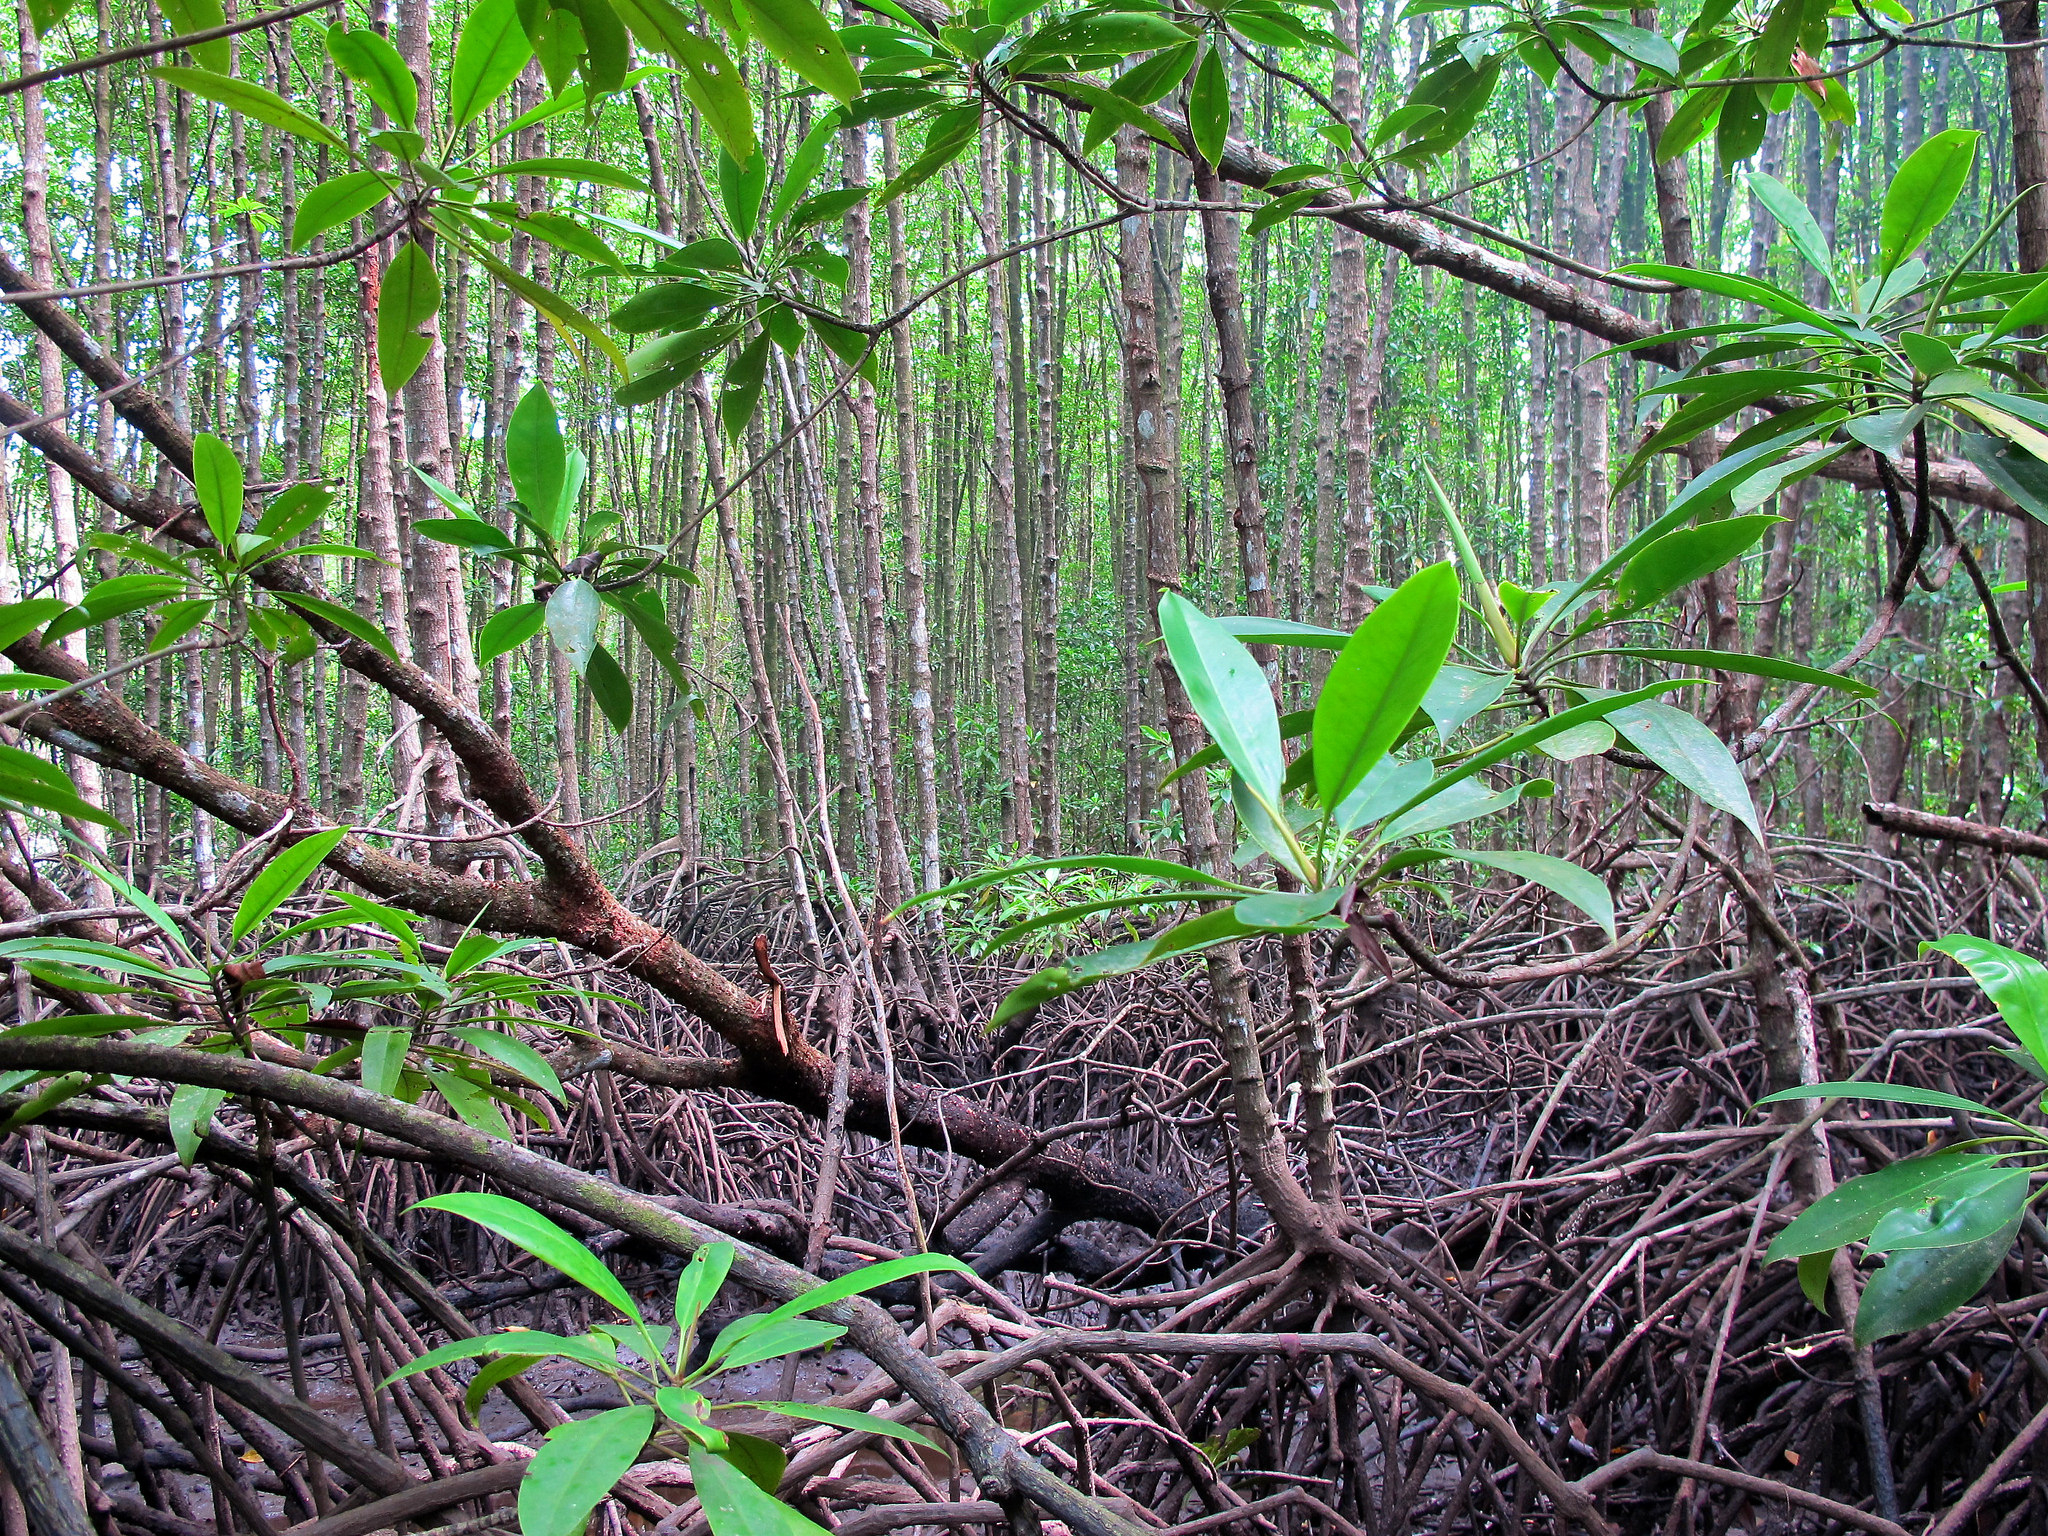 Taking stock of carbon in mangroves